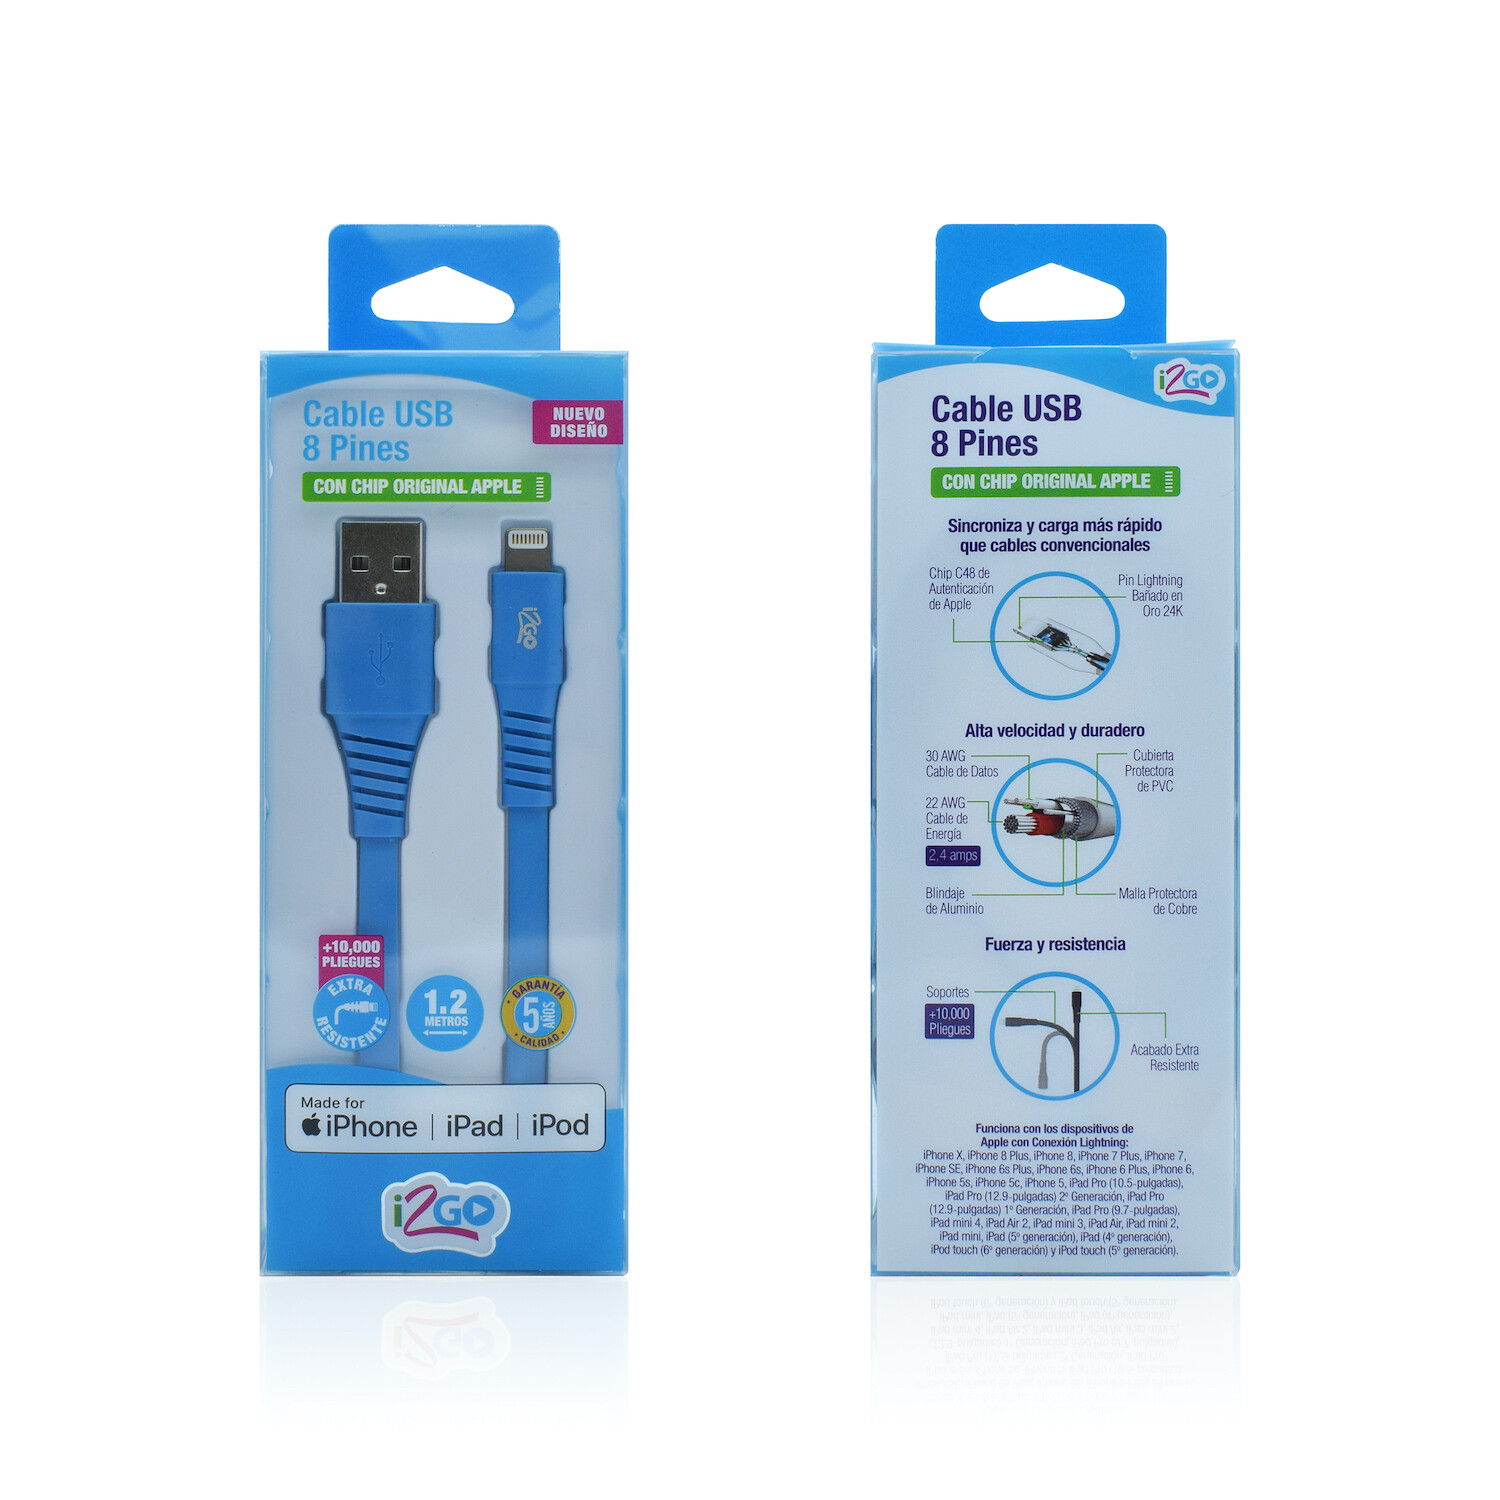 Cable Apple Lightning (1.2 mt) Carga y Sincroniza i2GO Azul